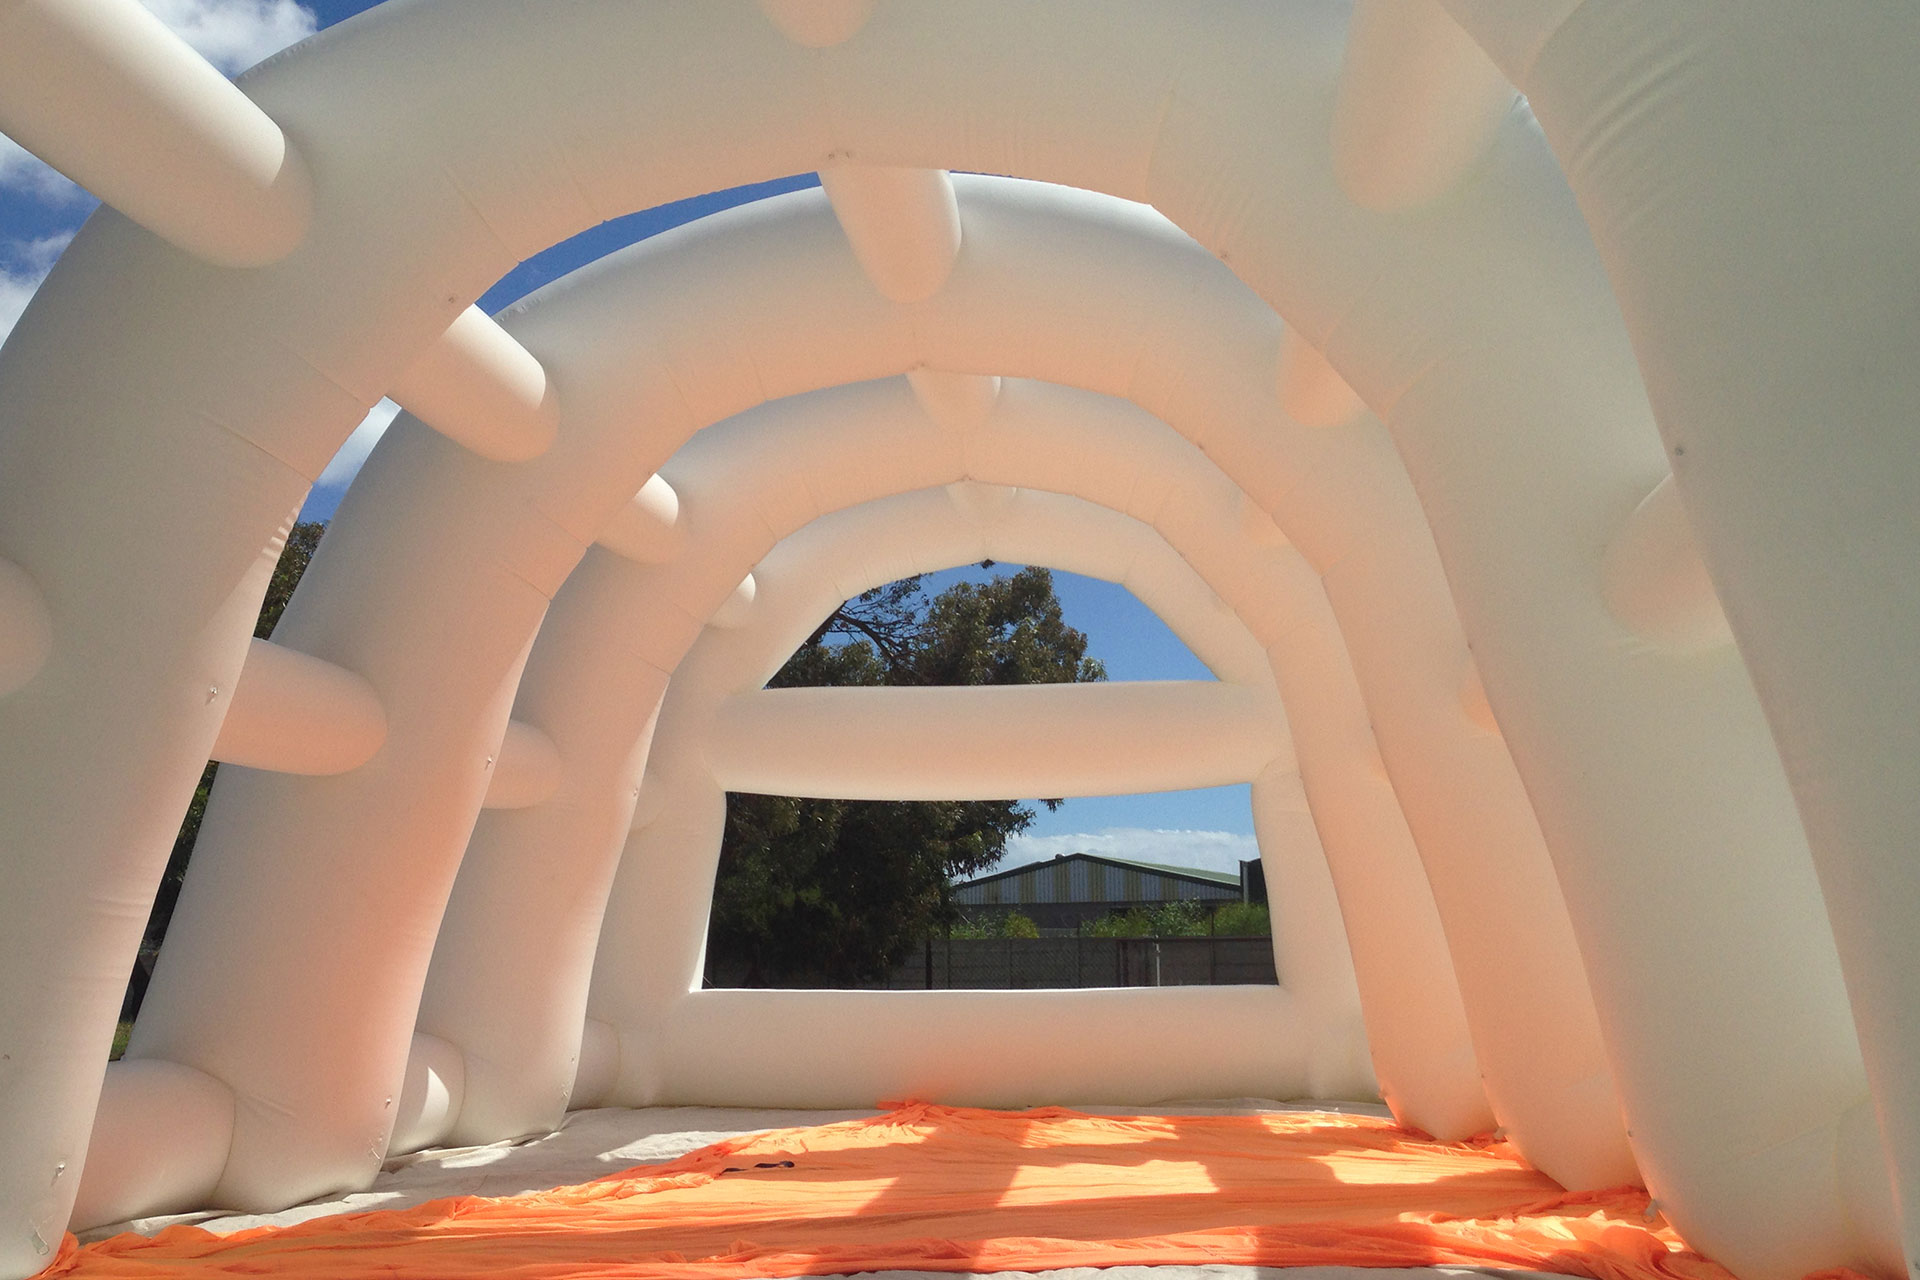 We design and manufacture giant inflatables